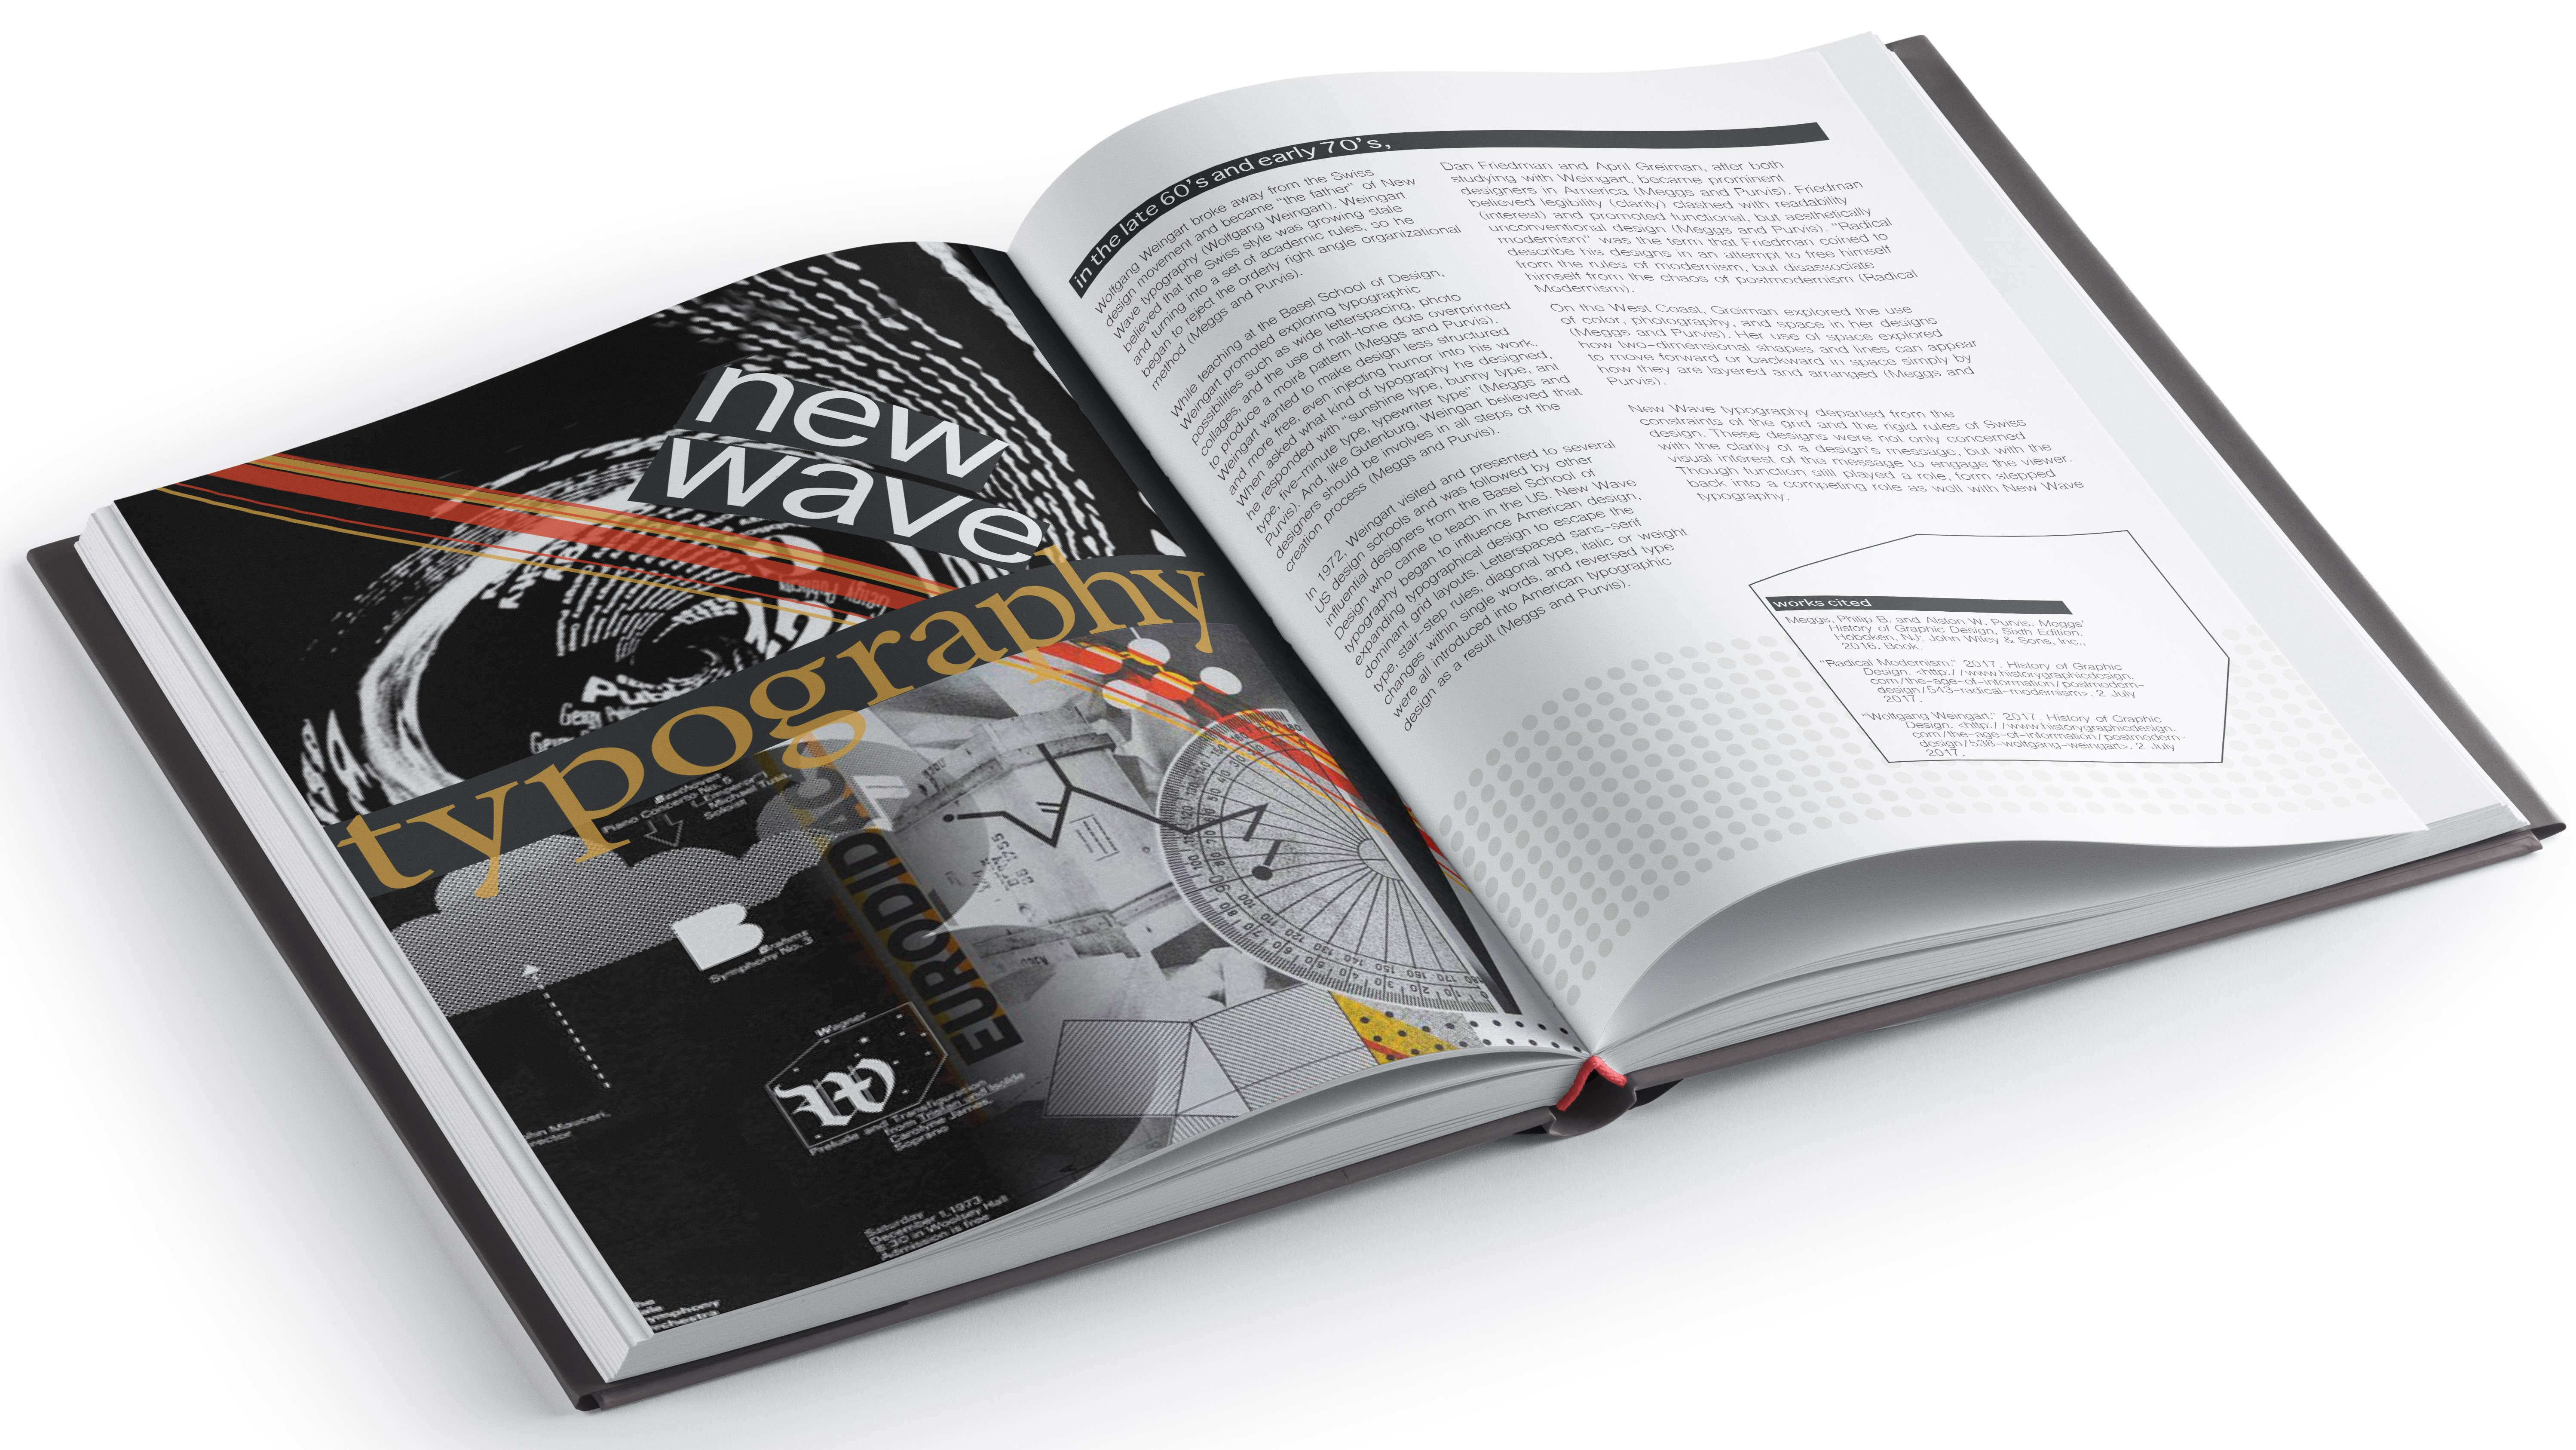 New Wave typography book spread